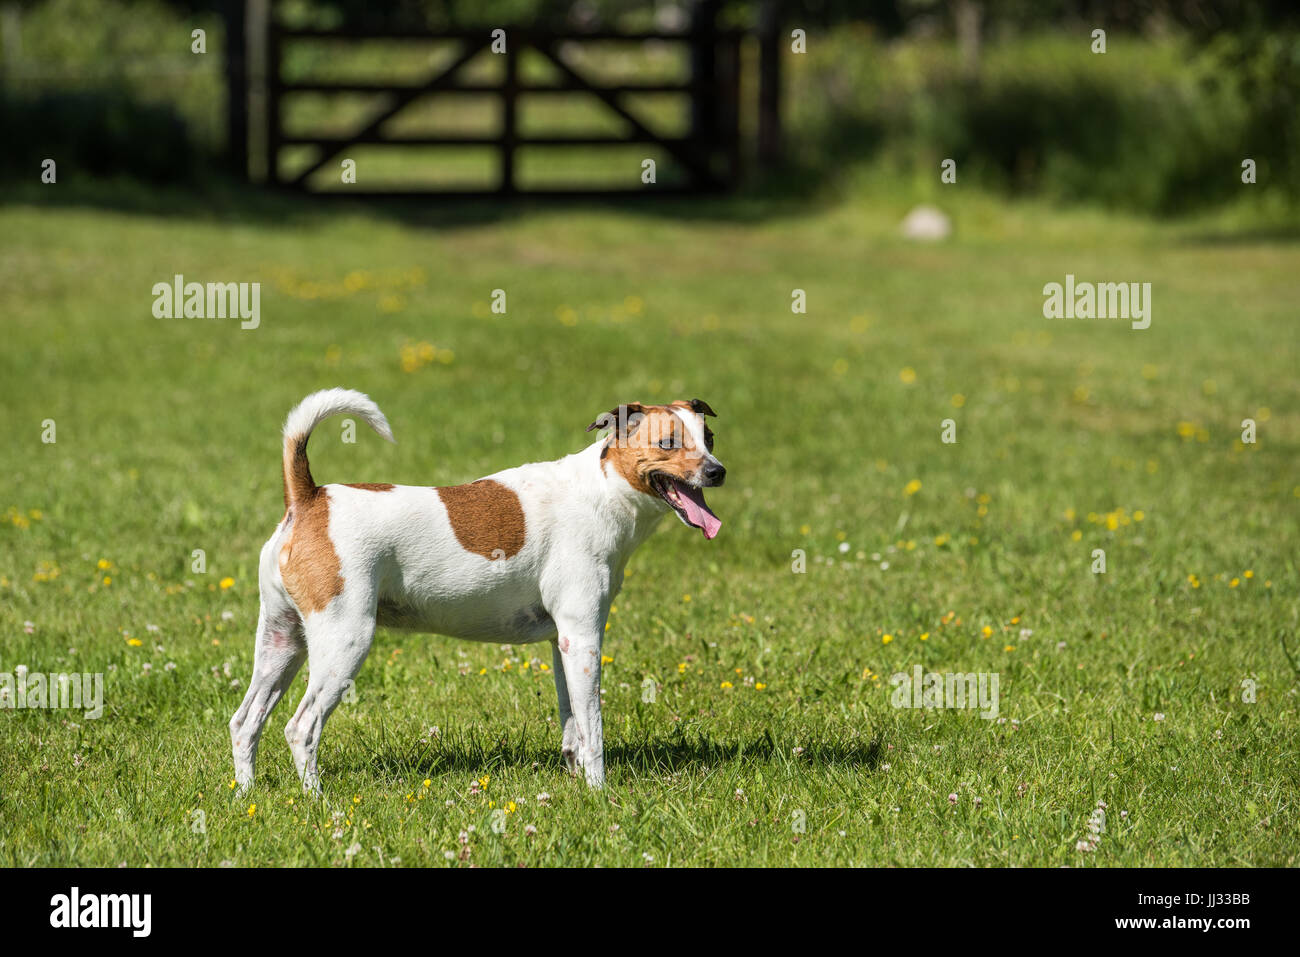 Danish Swedish Farmdog. This breed, which originates from Denmark and southern Sweden is lively and friendly. - Stock Image